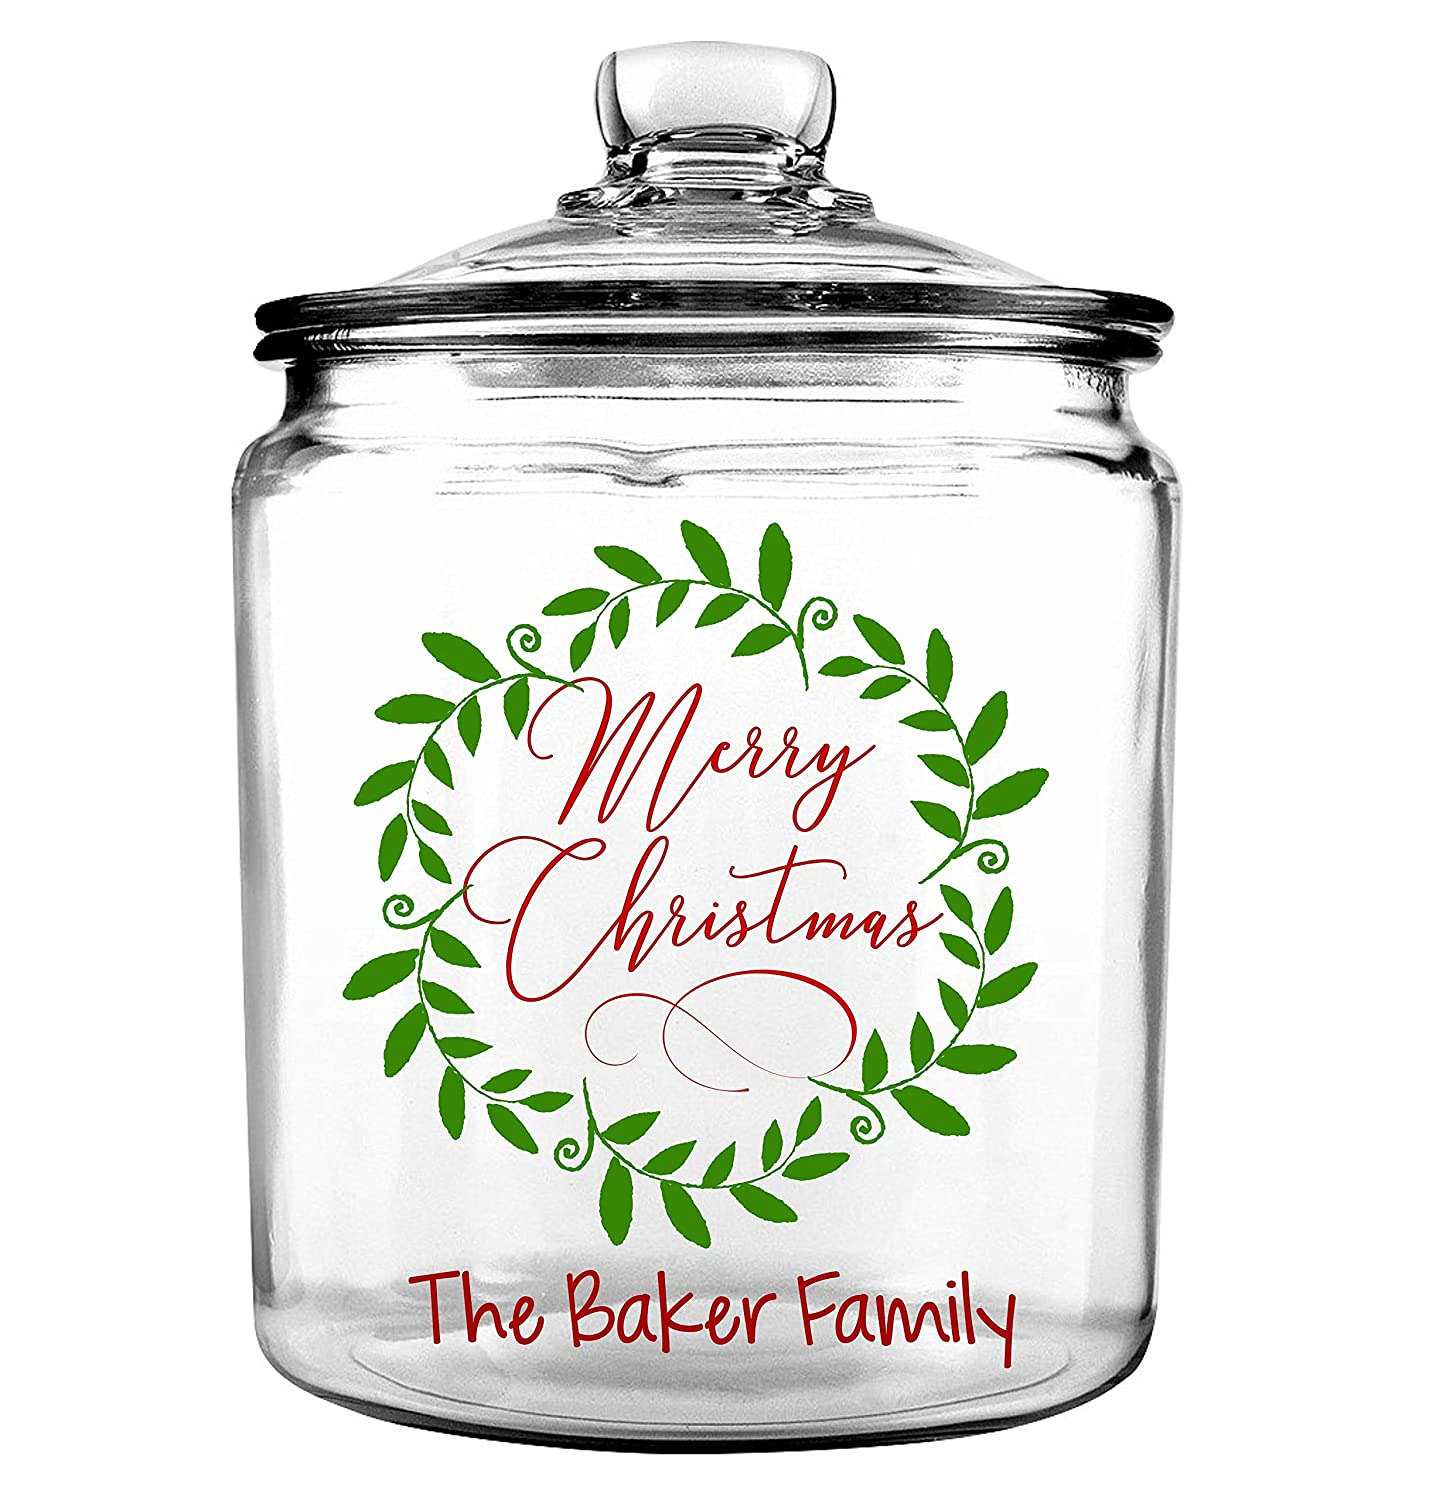 Christmas Cookie Tin Merry Christmas Cookie Jar Personalized Holiday Cookie Jar Gift Box Cookie Jar Christmas Cookies For Santa -Christmas Cookie Jar